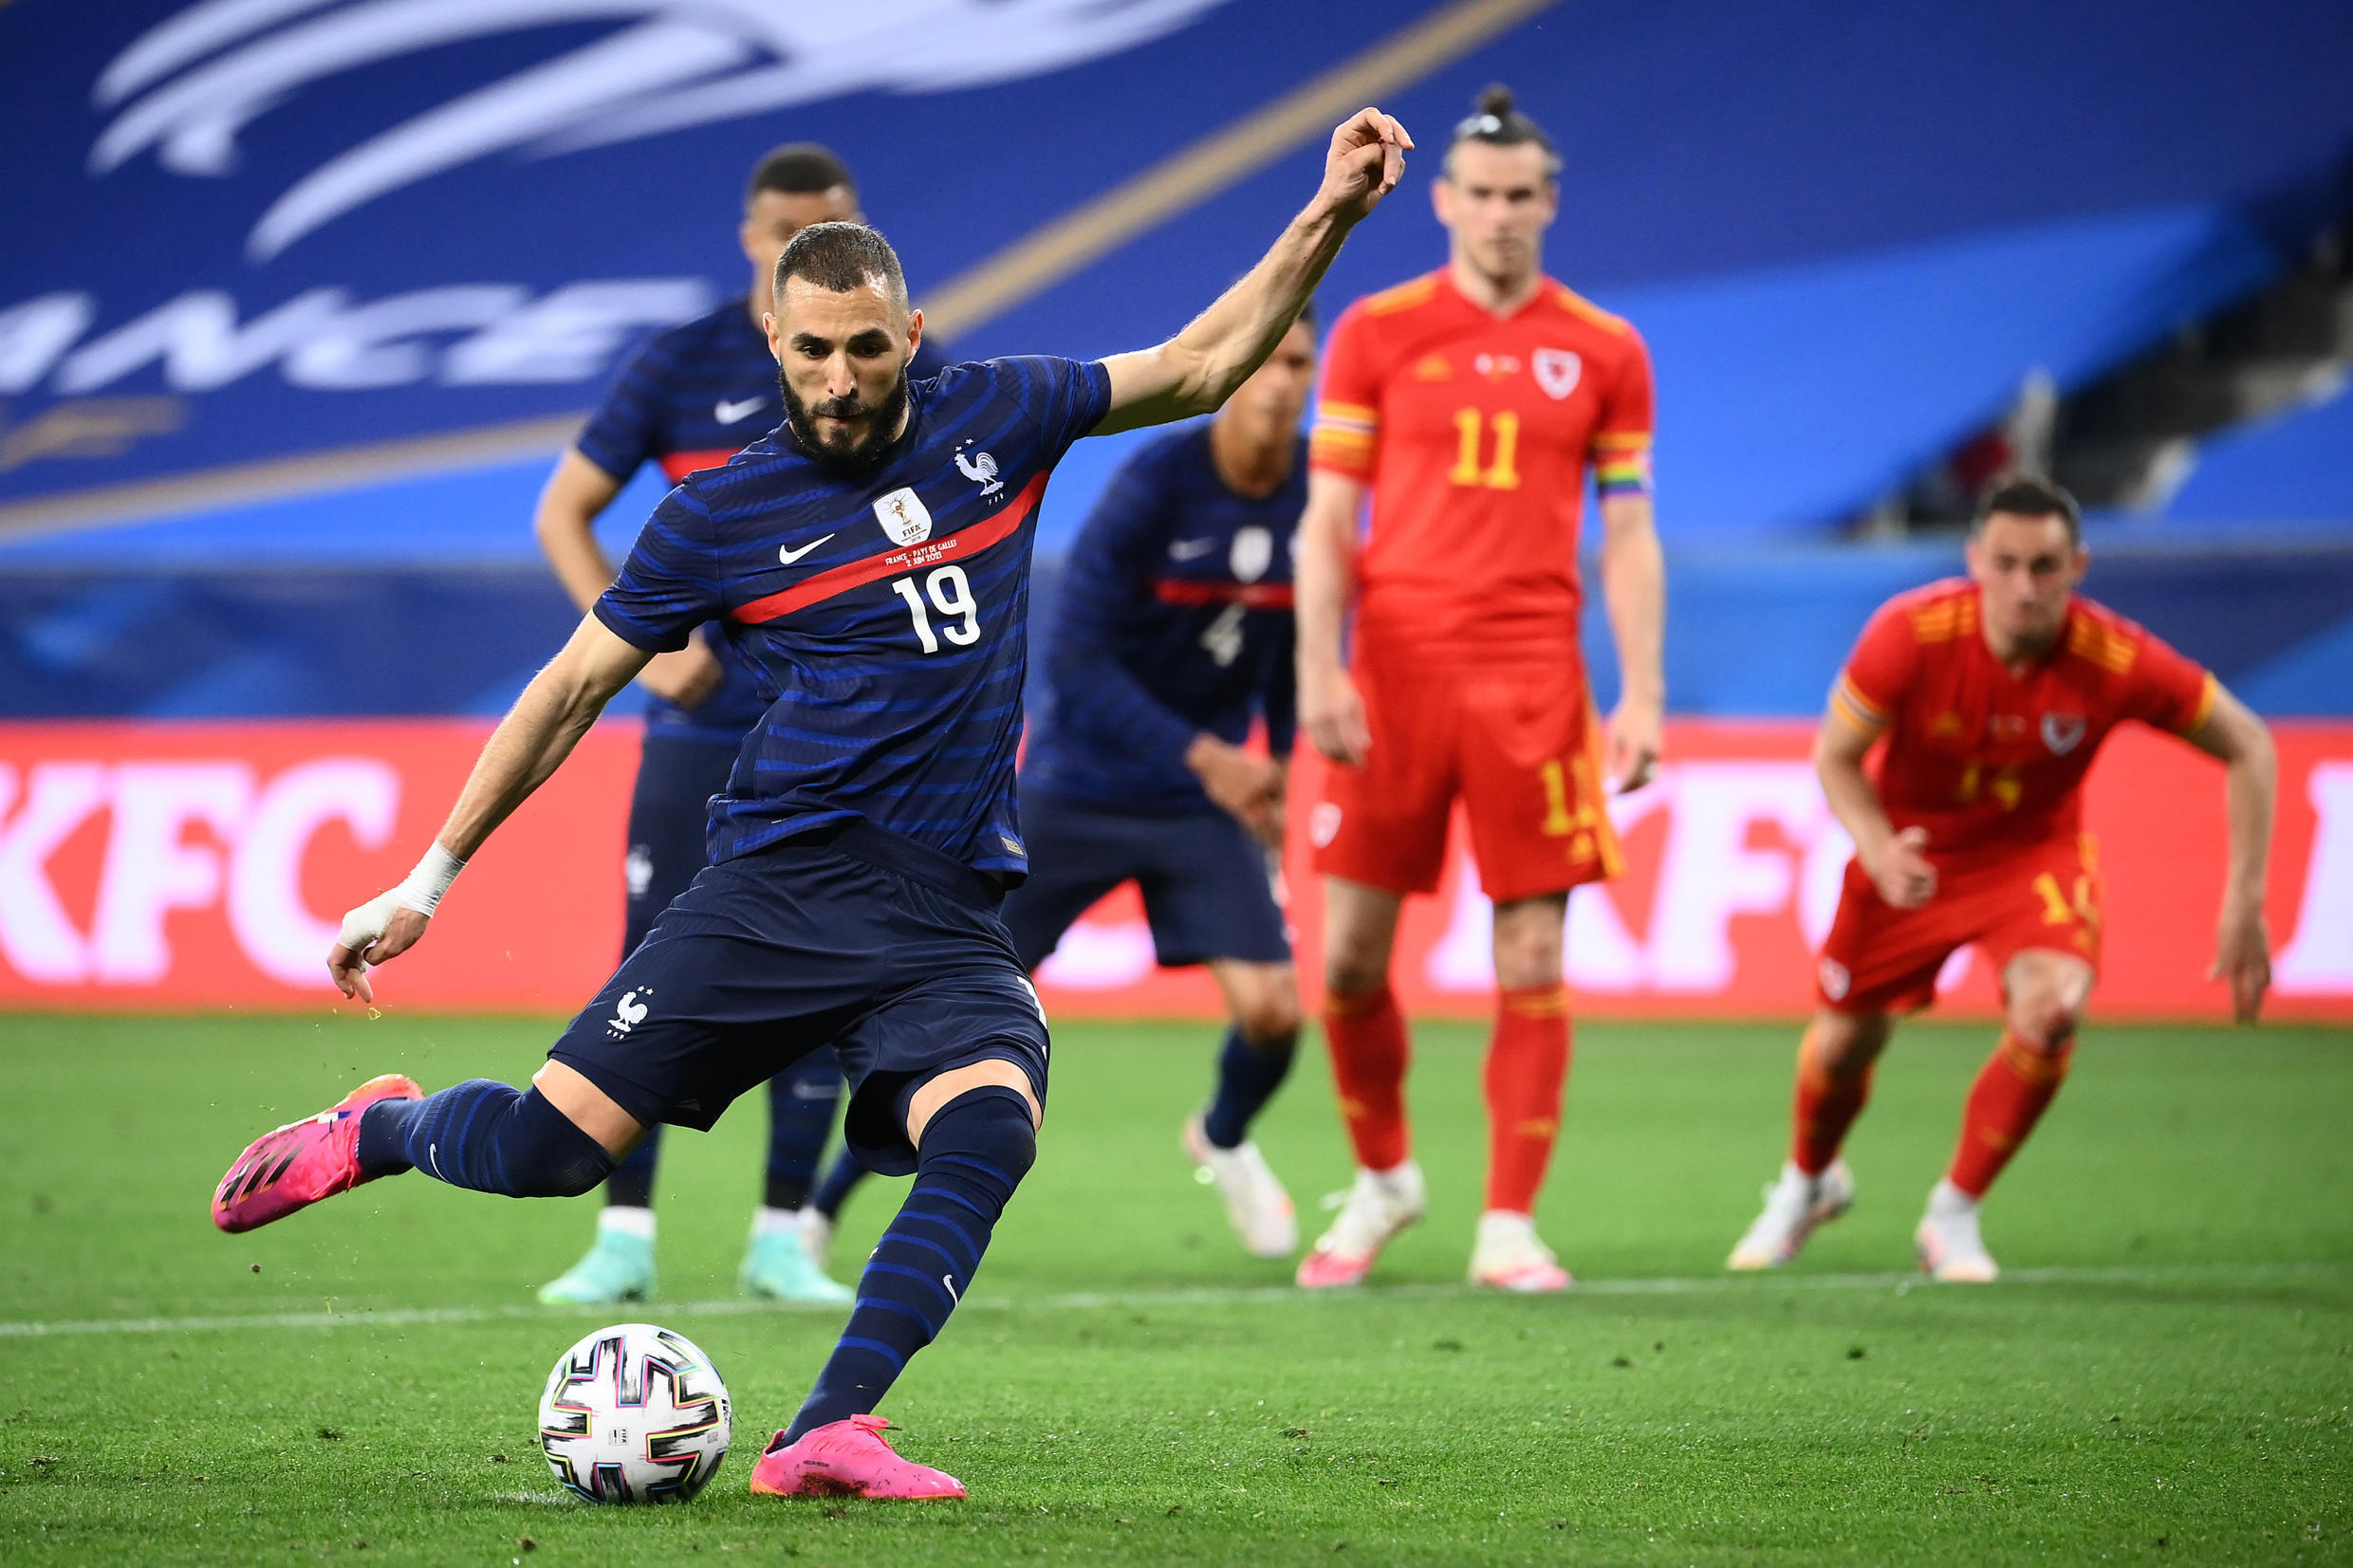 France's forward Karim Benzema misses to score on a penalty kick during the friendly football match between France and Wales  in Nice, southern France on June 2, 2021.